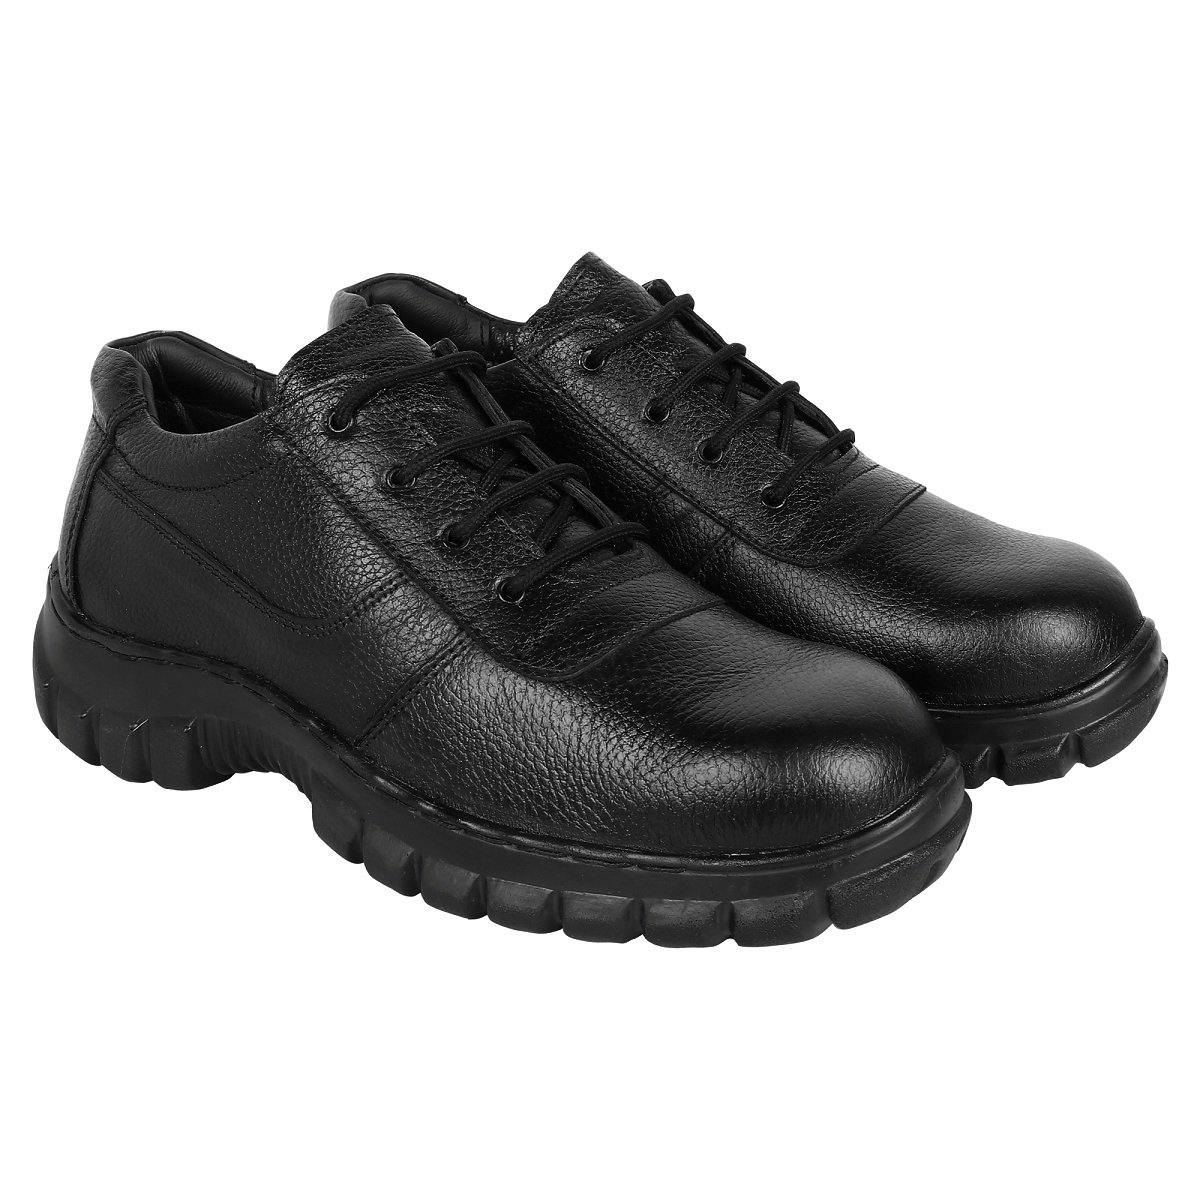 leather Shoes for Men ( Steel Toe)- Minor Defect